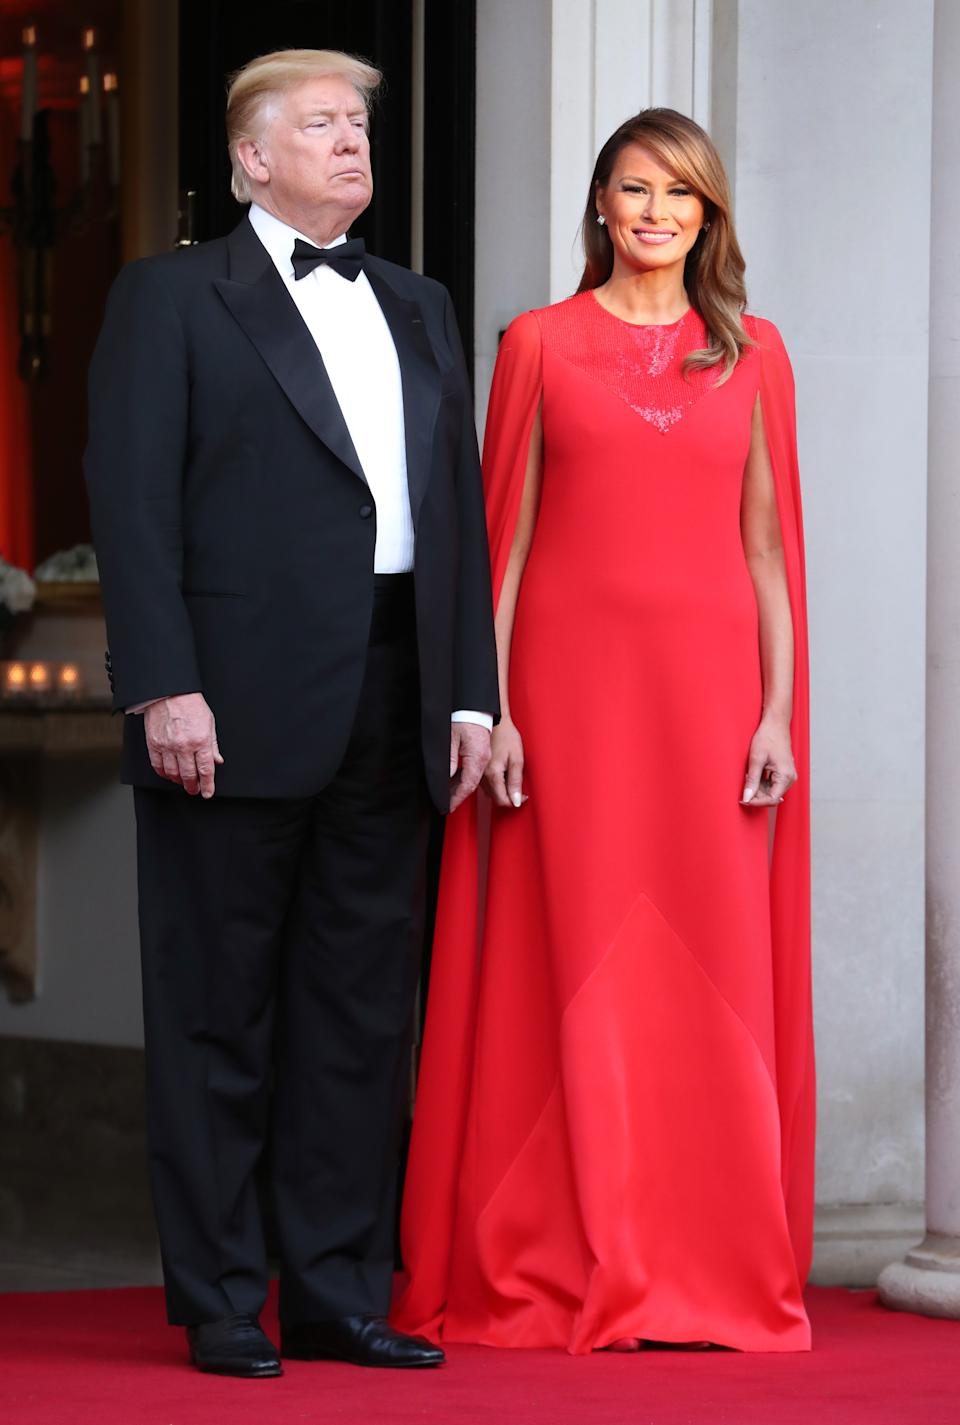 For the presidential couple's final evening in London, Melania Trump sought inspiration from the Duchess of Sussex in a £5,610 sequinned Givenchy gown - the royal's go-to designer. [Photo: Getty]